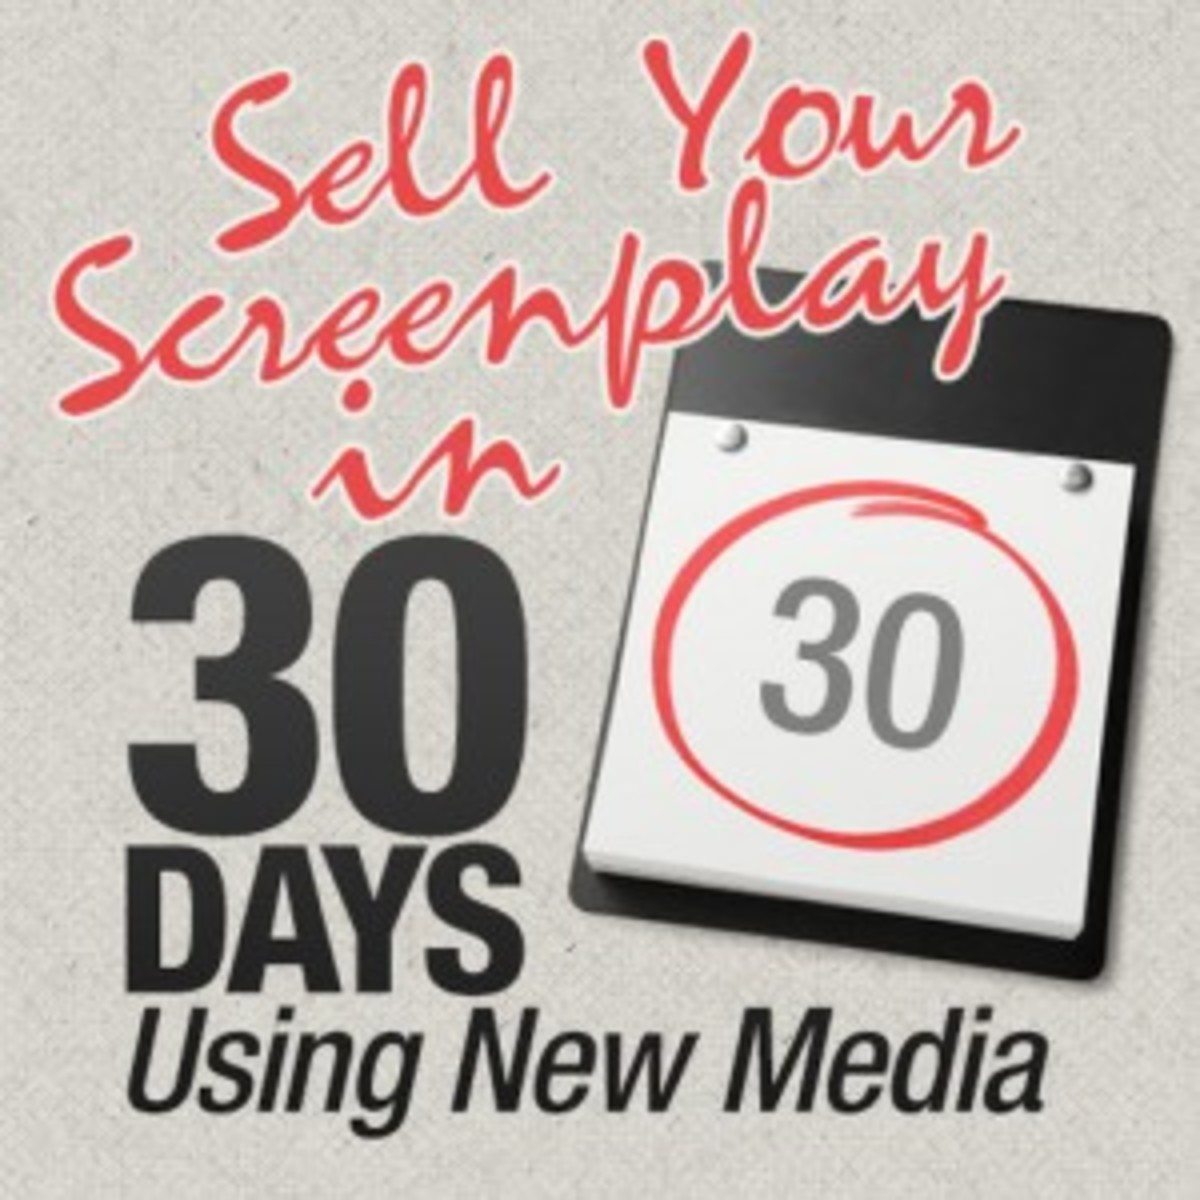 sellyourscreenplay30days-500_medium